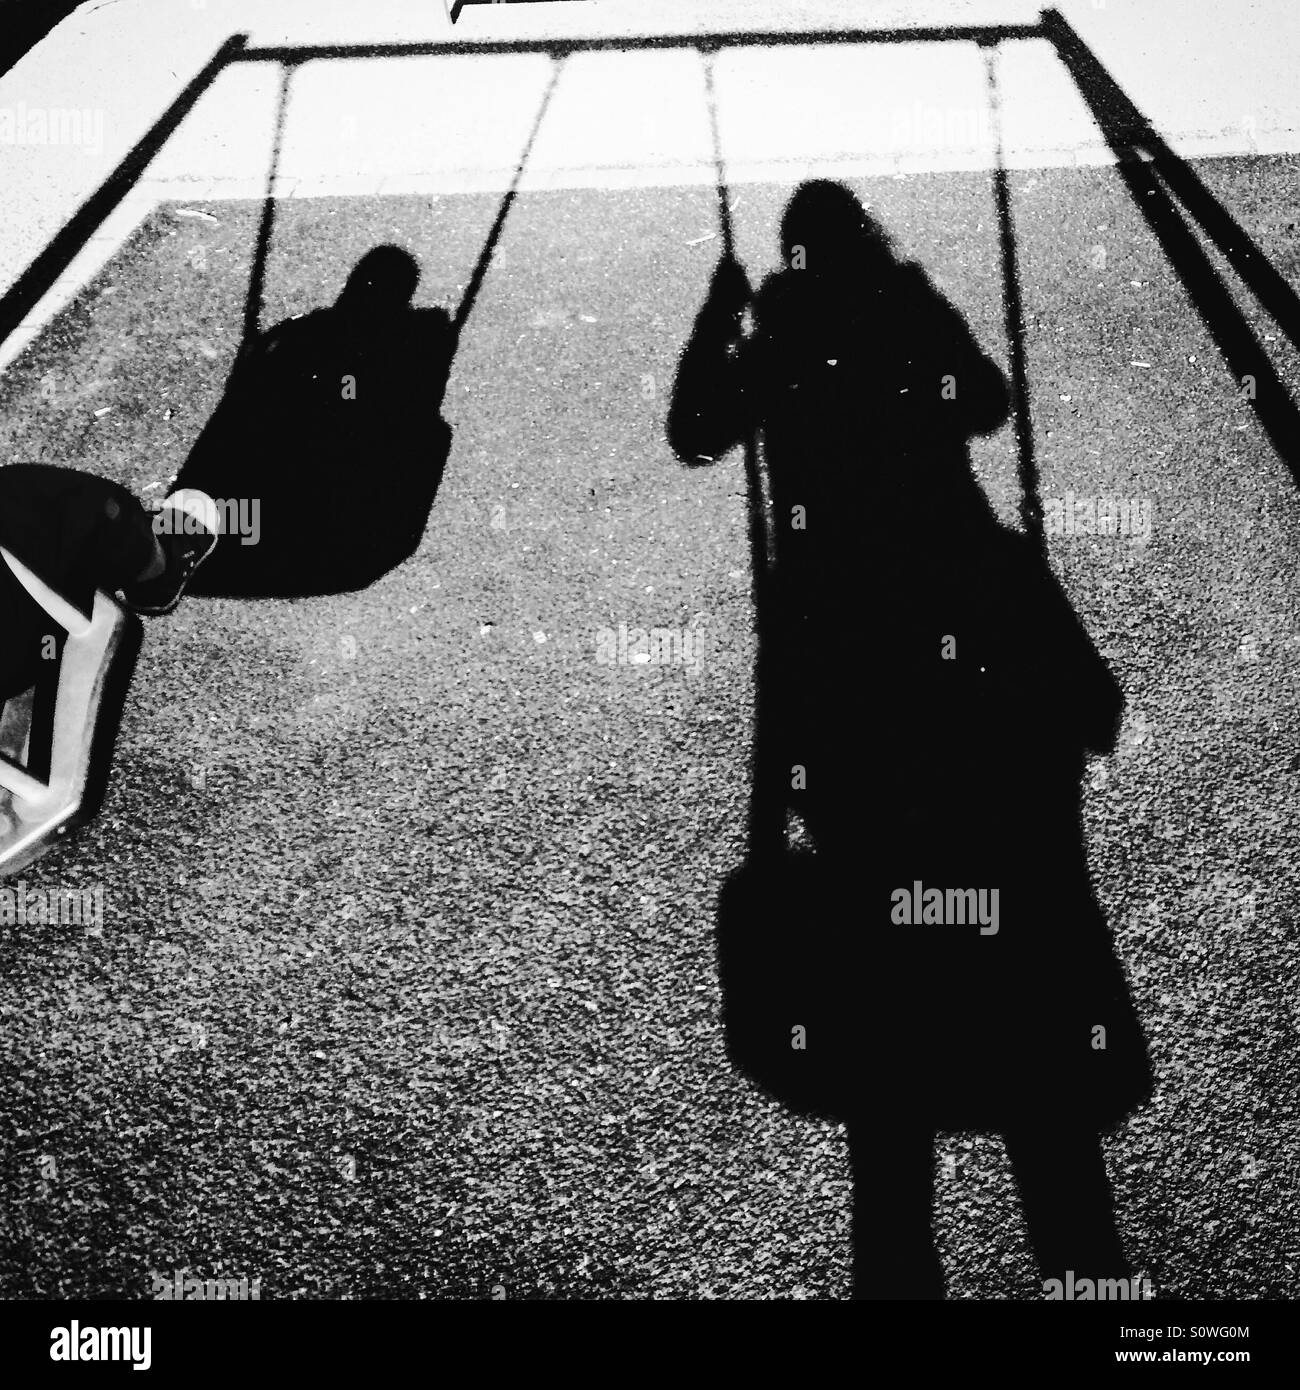 Shadow of Mum and toddler on swings - Stock Image